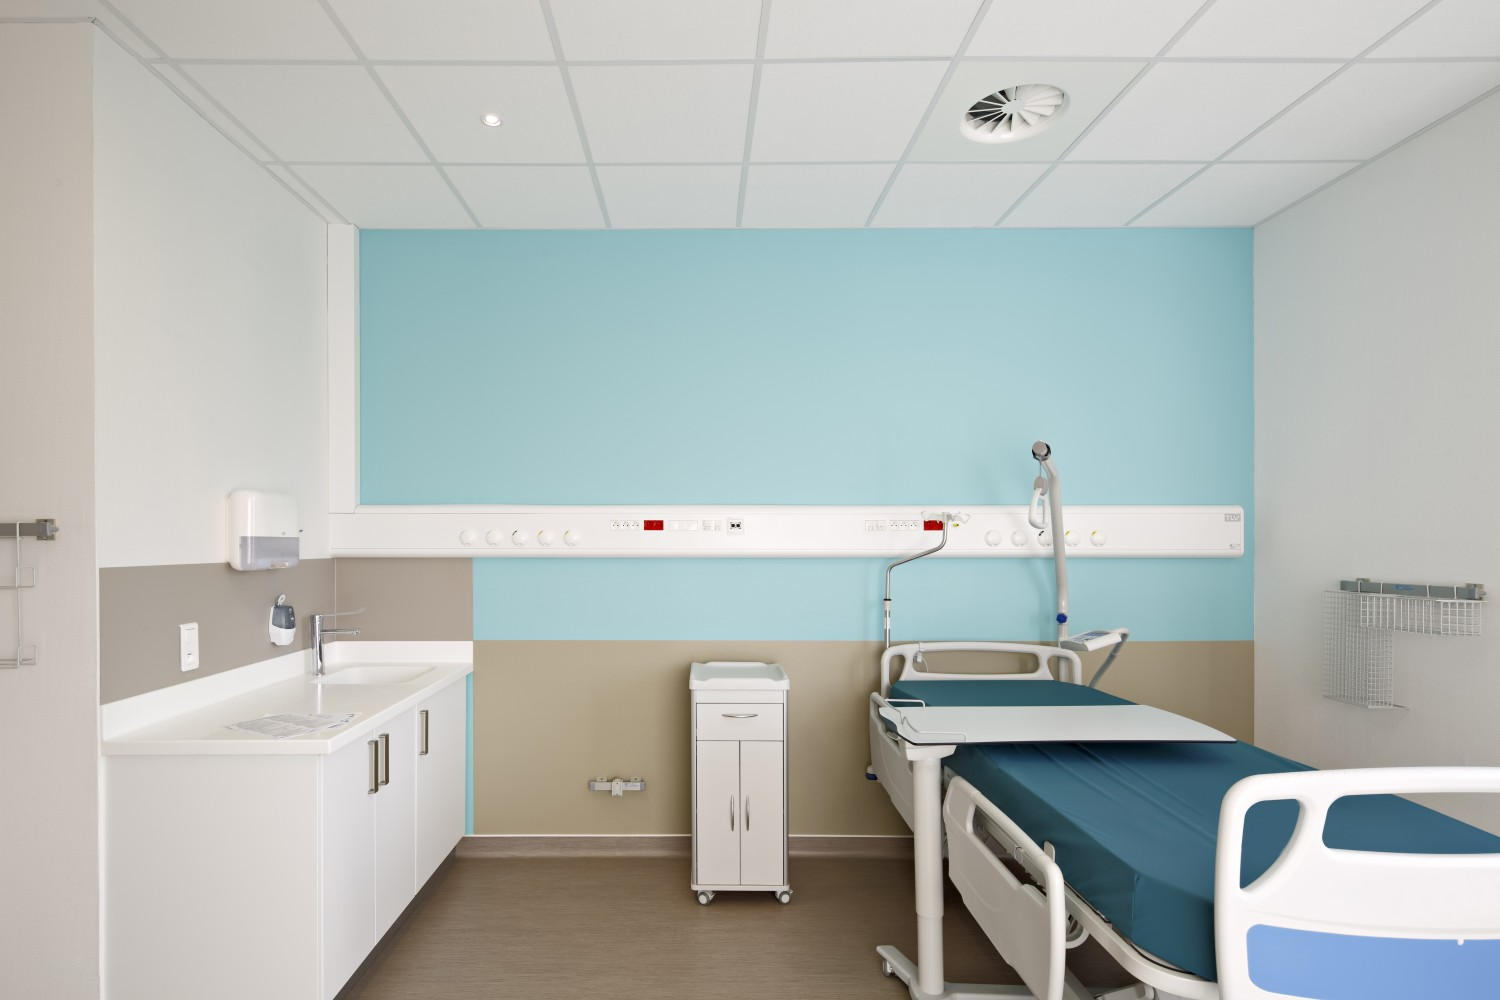 Luminaire Saint Etienne Tlv Equipped Belharra Clinic In Bayonne